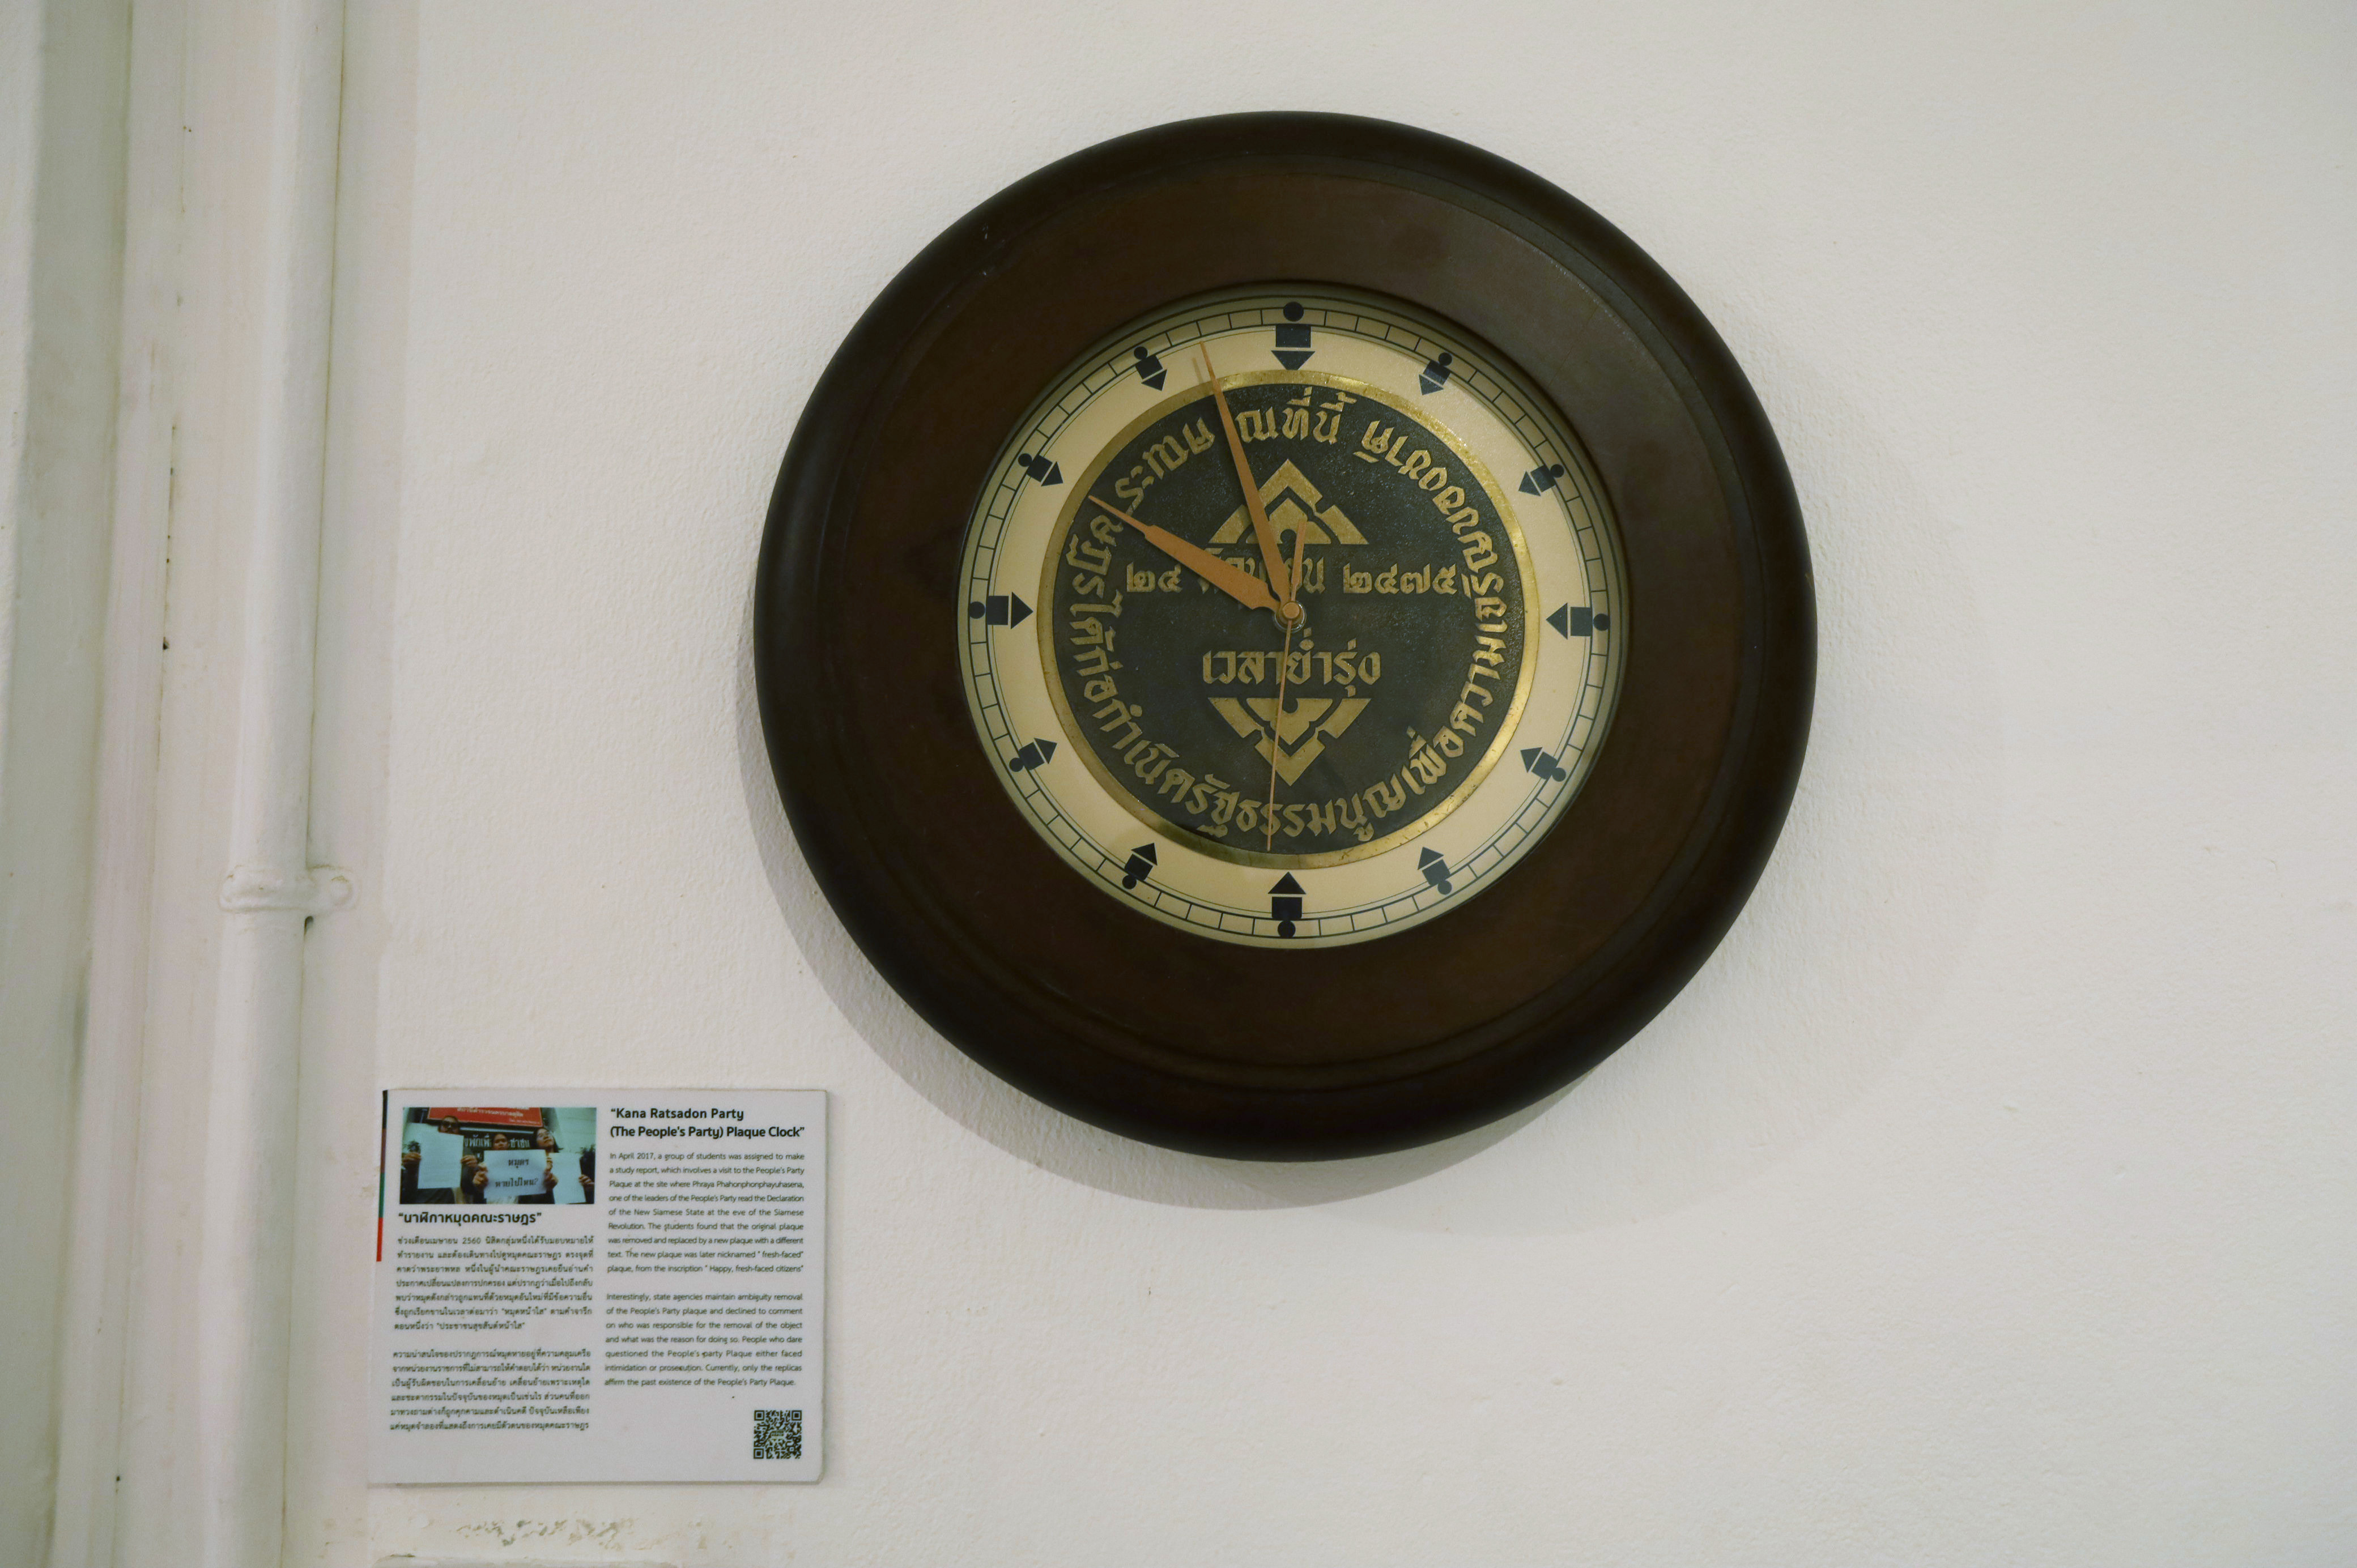 Kana Ratsadon Party (The People's Party) Plaque Clock